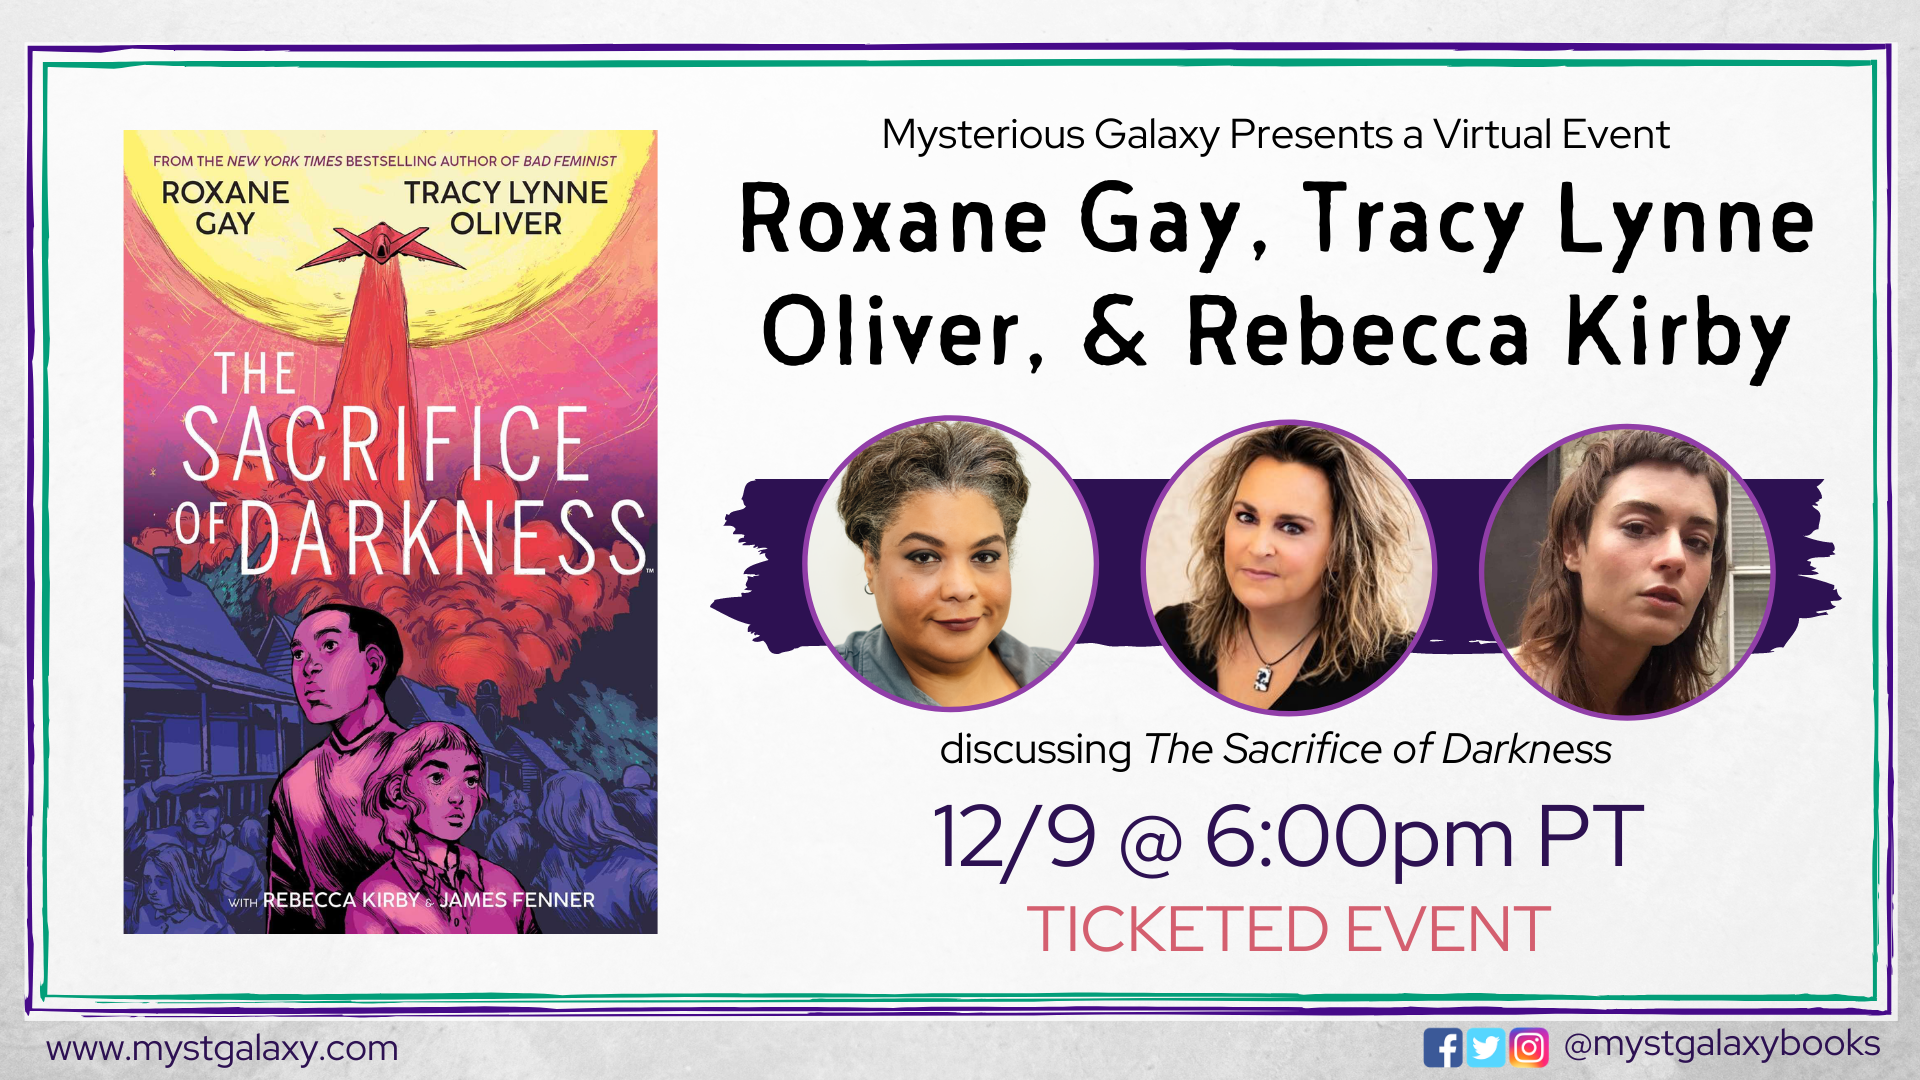 Cover of The Sacrifice of Darkness banner with portraits of Roxane Gay, Tracy Lynne Oliver, and Rebecca Kirby